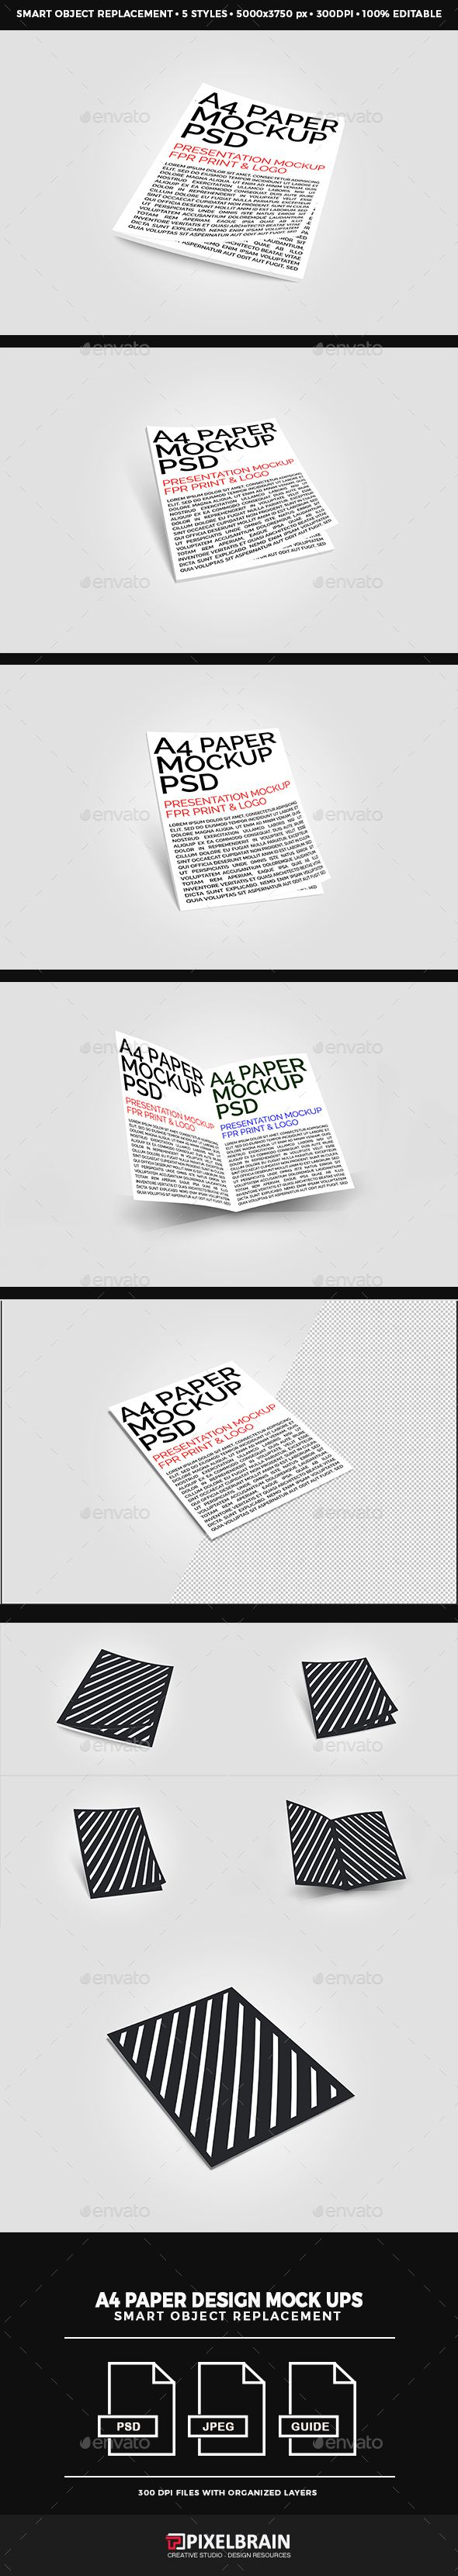 A4 Paper / Poster / #Flyer #Mockup #Design - Posters Print Download here:  https://graphicriver.net/item/a4-paper-poster-flyer-mockup-design/16700216?ref=alena994